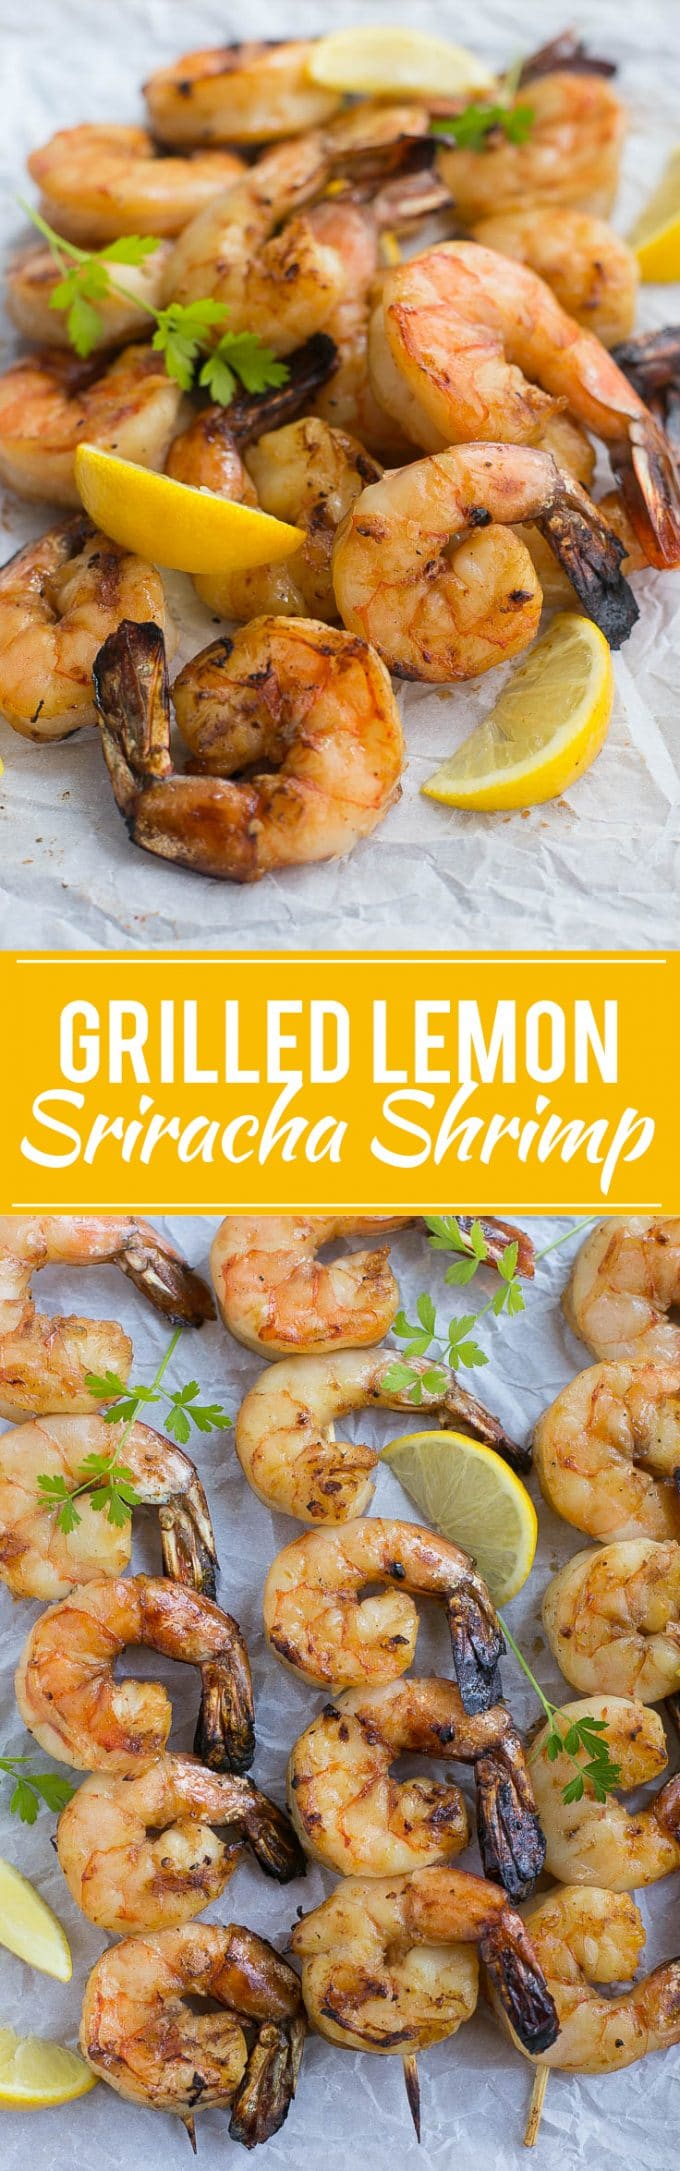 Grilled Lemon Sriracha Shrimp Recipe | Sriracha Shrimp | Best Sriracha Shrimp | Easy Sriracha Shrimp | Grilled Sriracha Shrimp